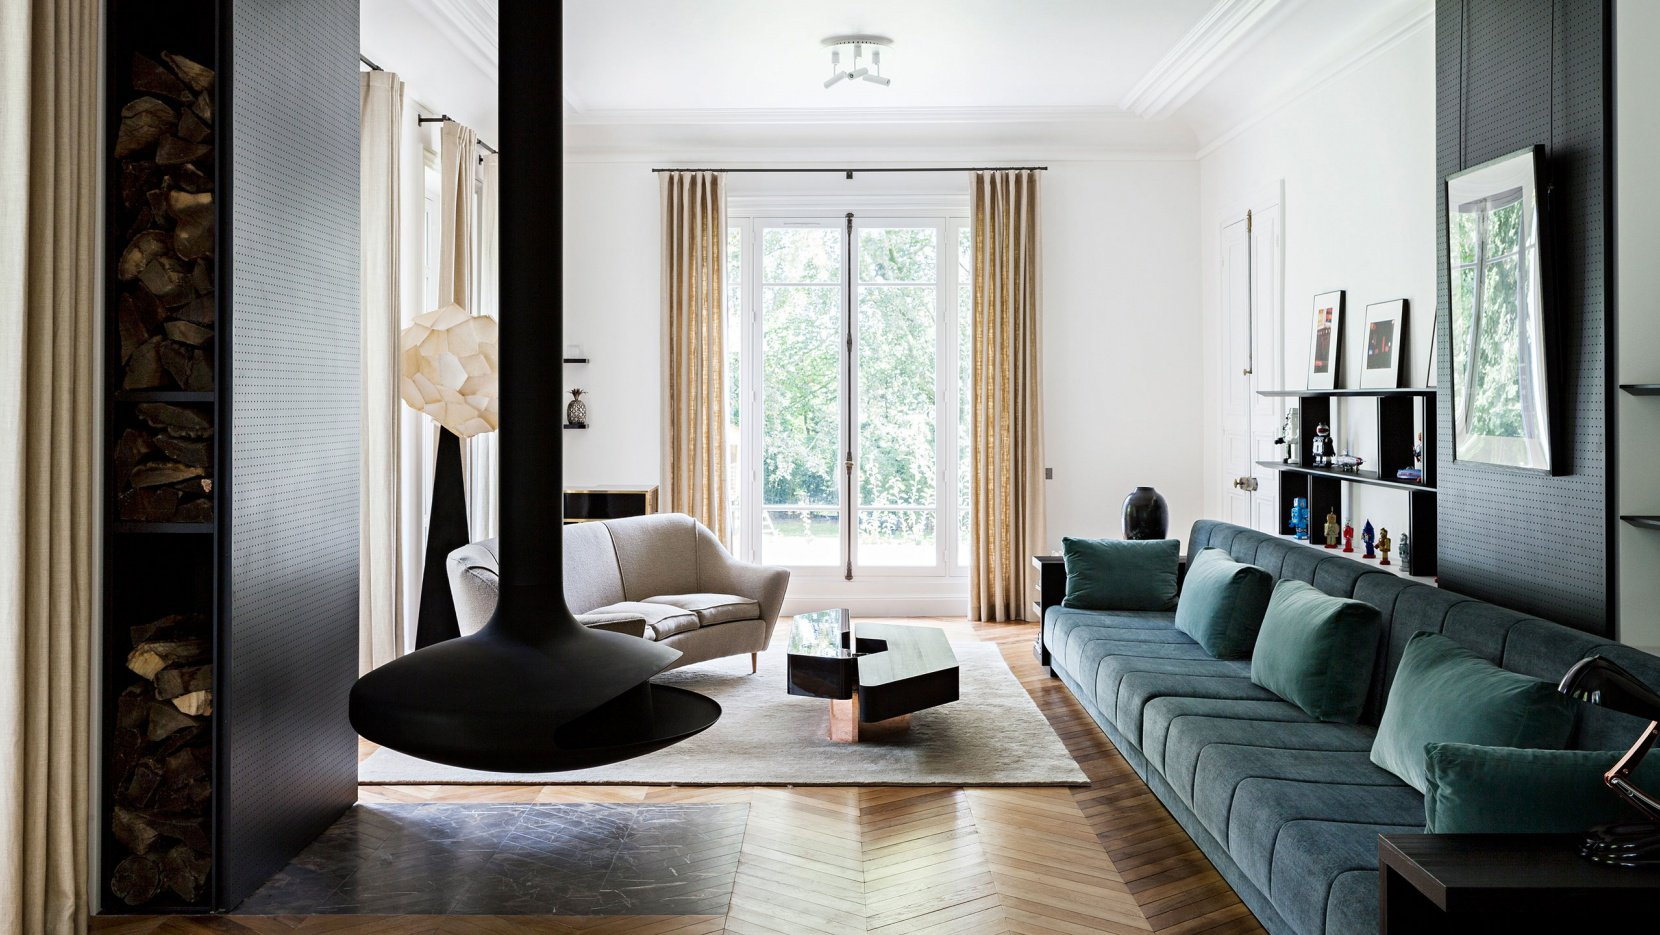 Interior shot of living room with white walls, high ceilings, tall window, parquet floors, floating fireplace, long teal sofa, and other modern pieces of furniture.